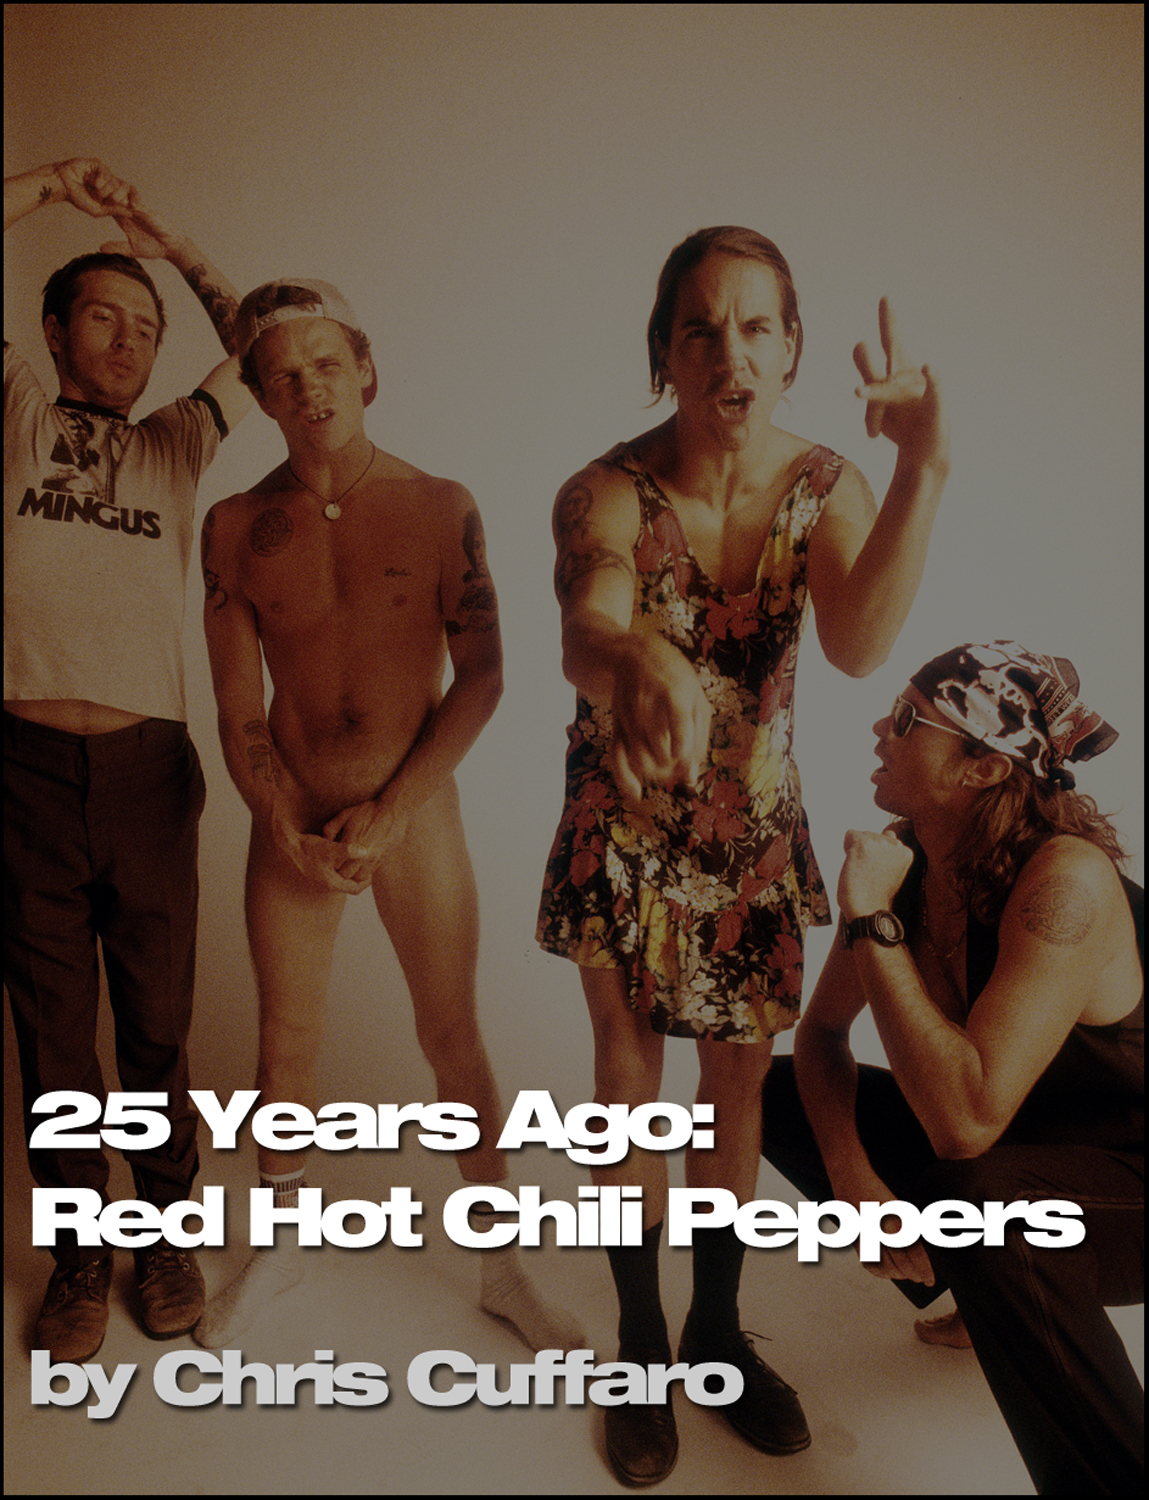 25 Years Ago: Red Hot Chili Peppers